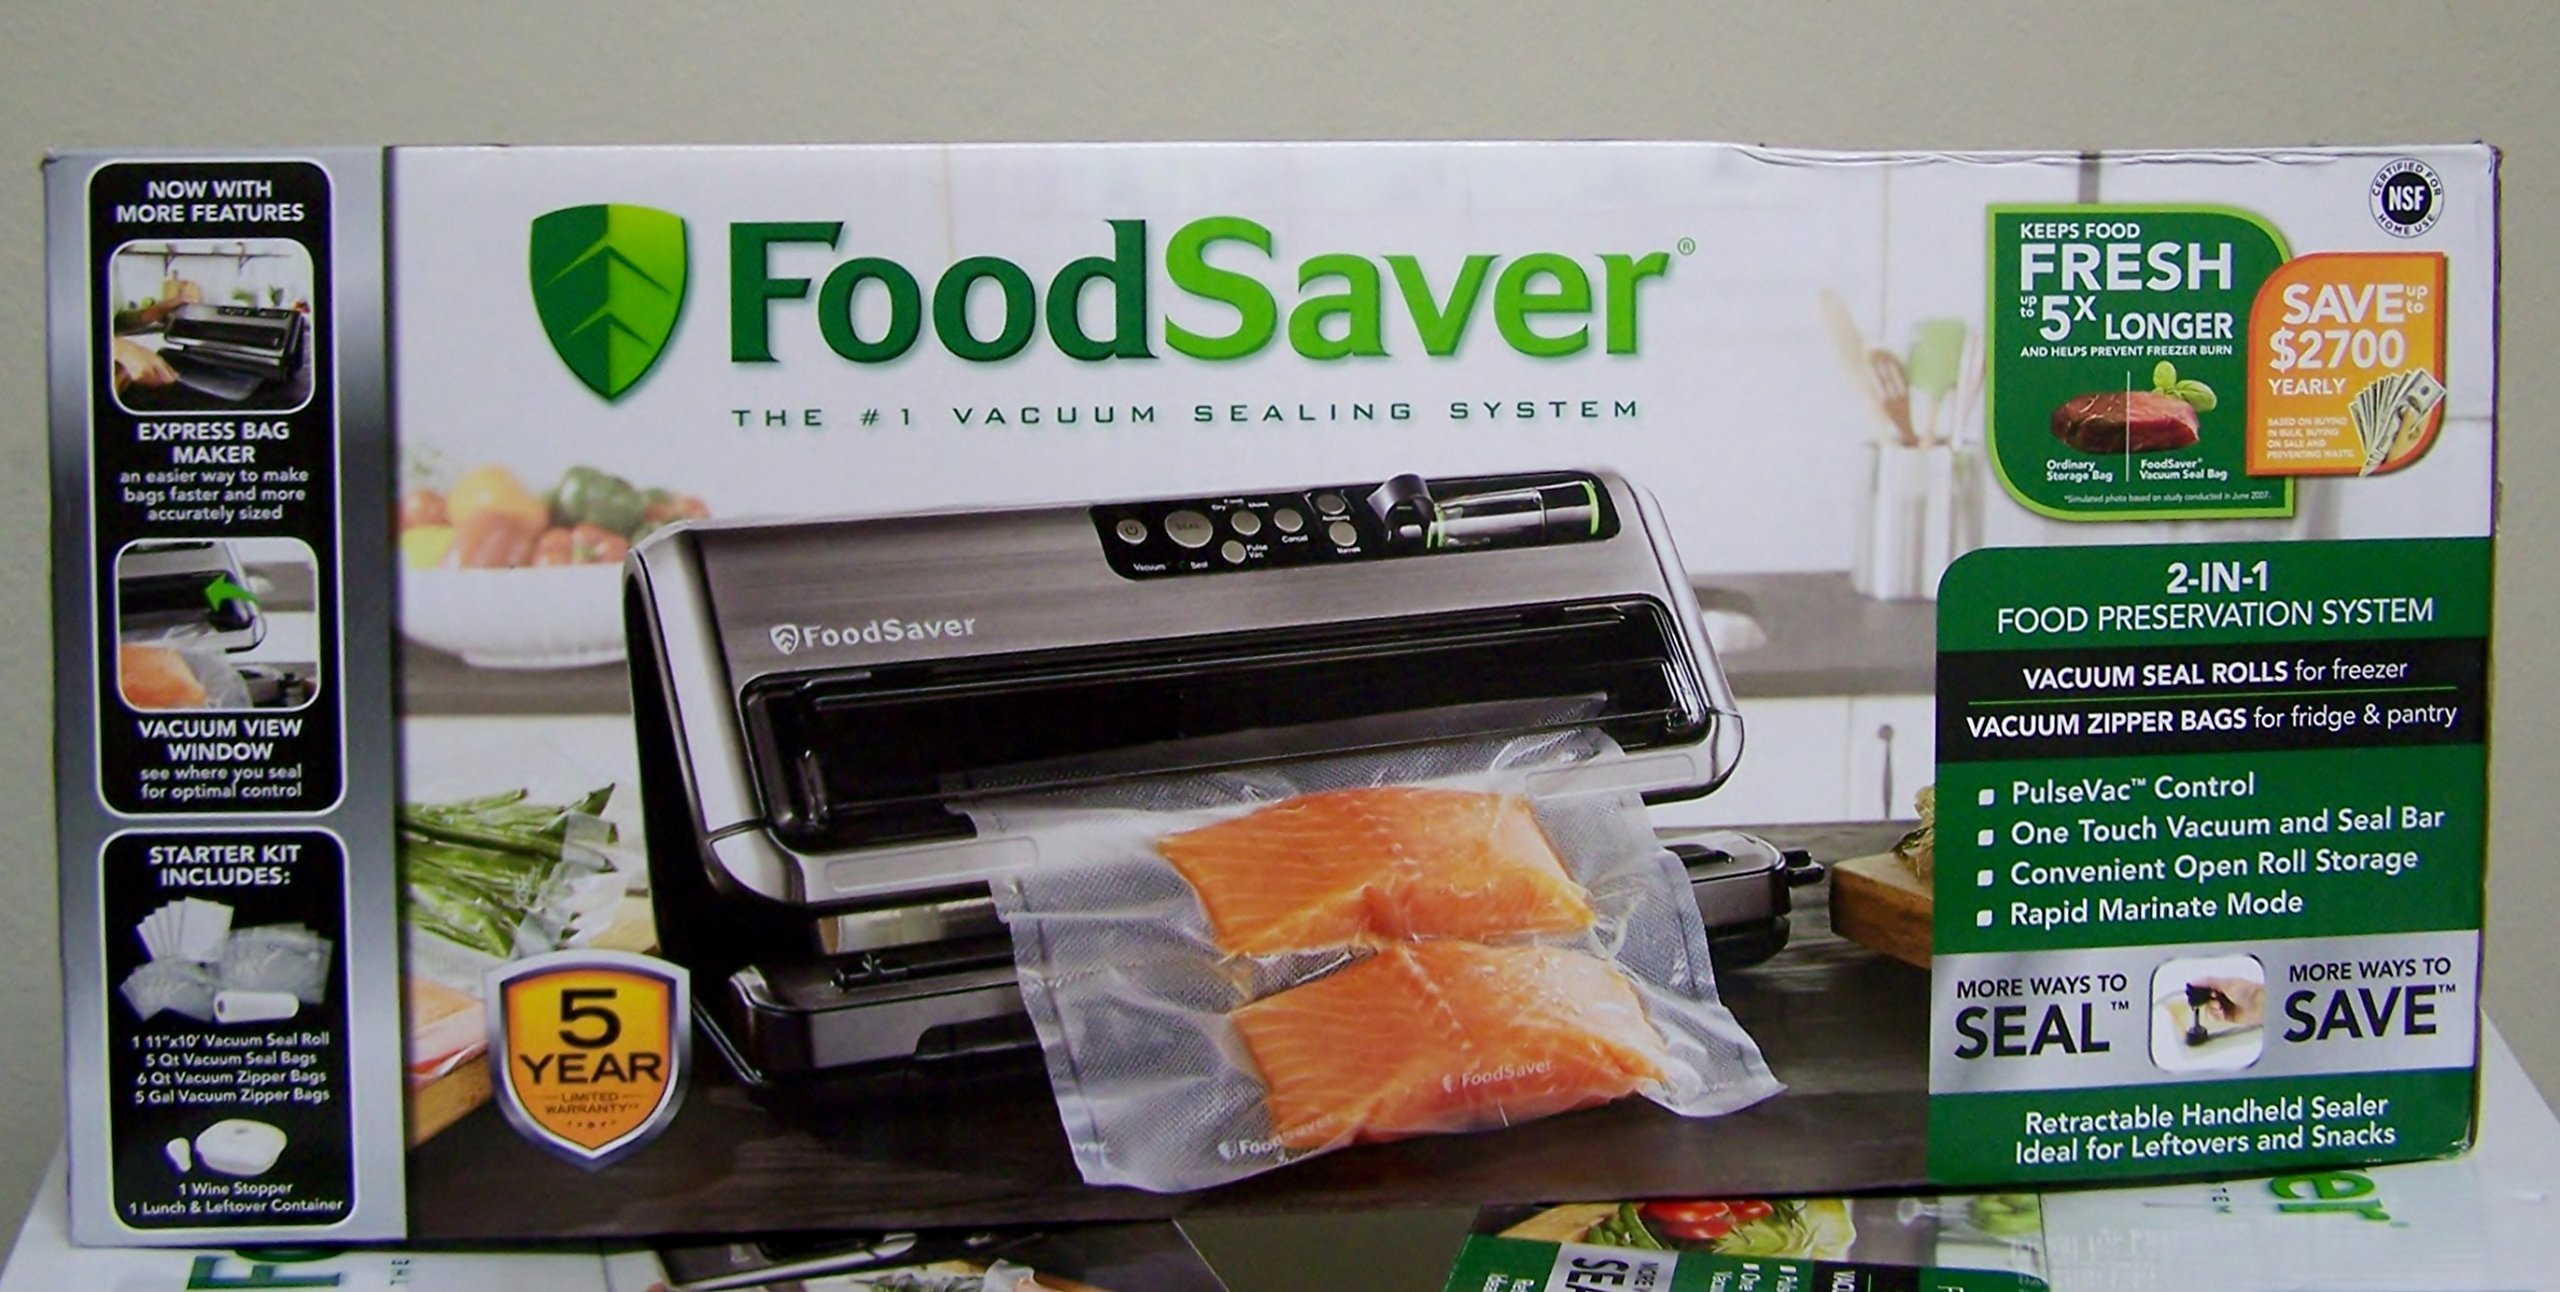 FoodSaver FM5480 2-in-1 Food Preservation System, Black/Silver by Foodsaver